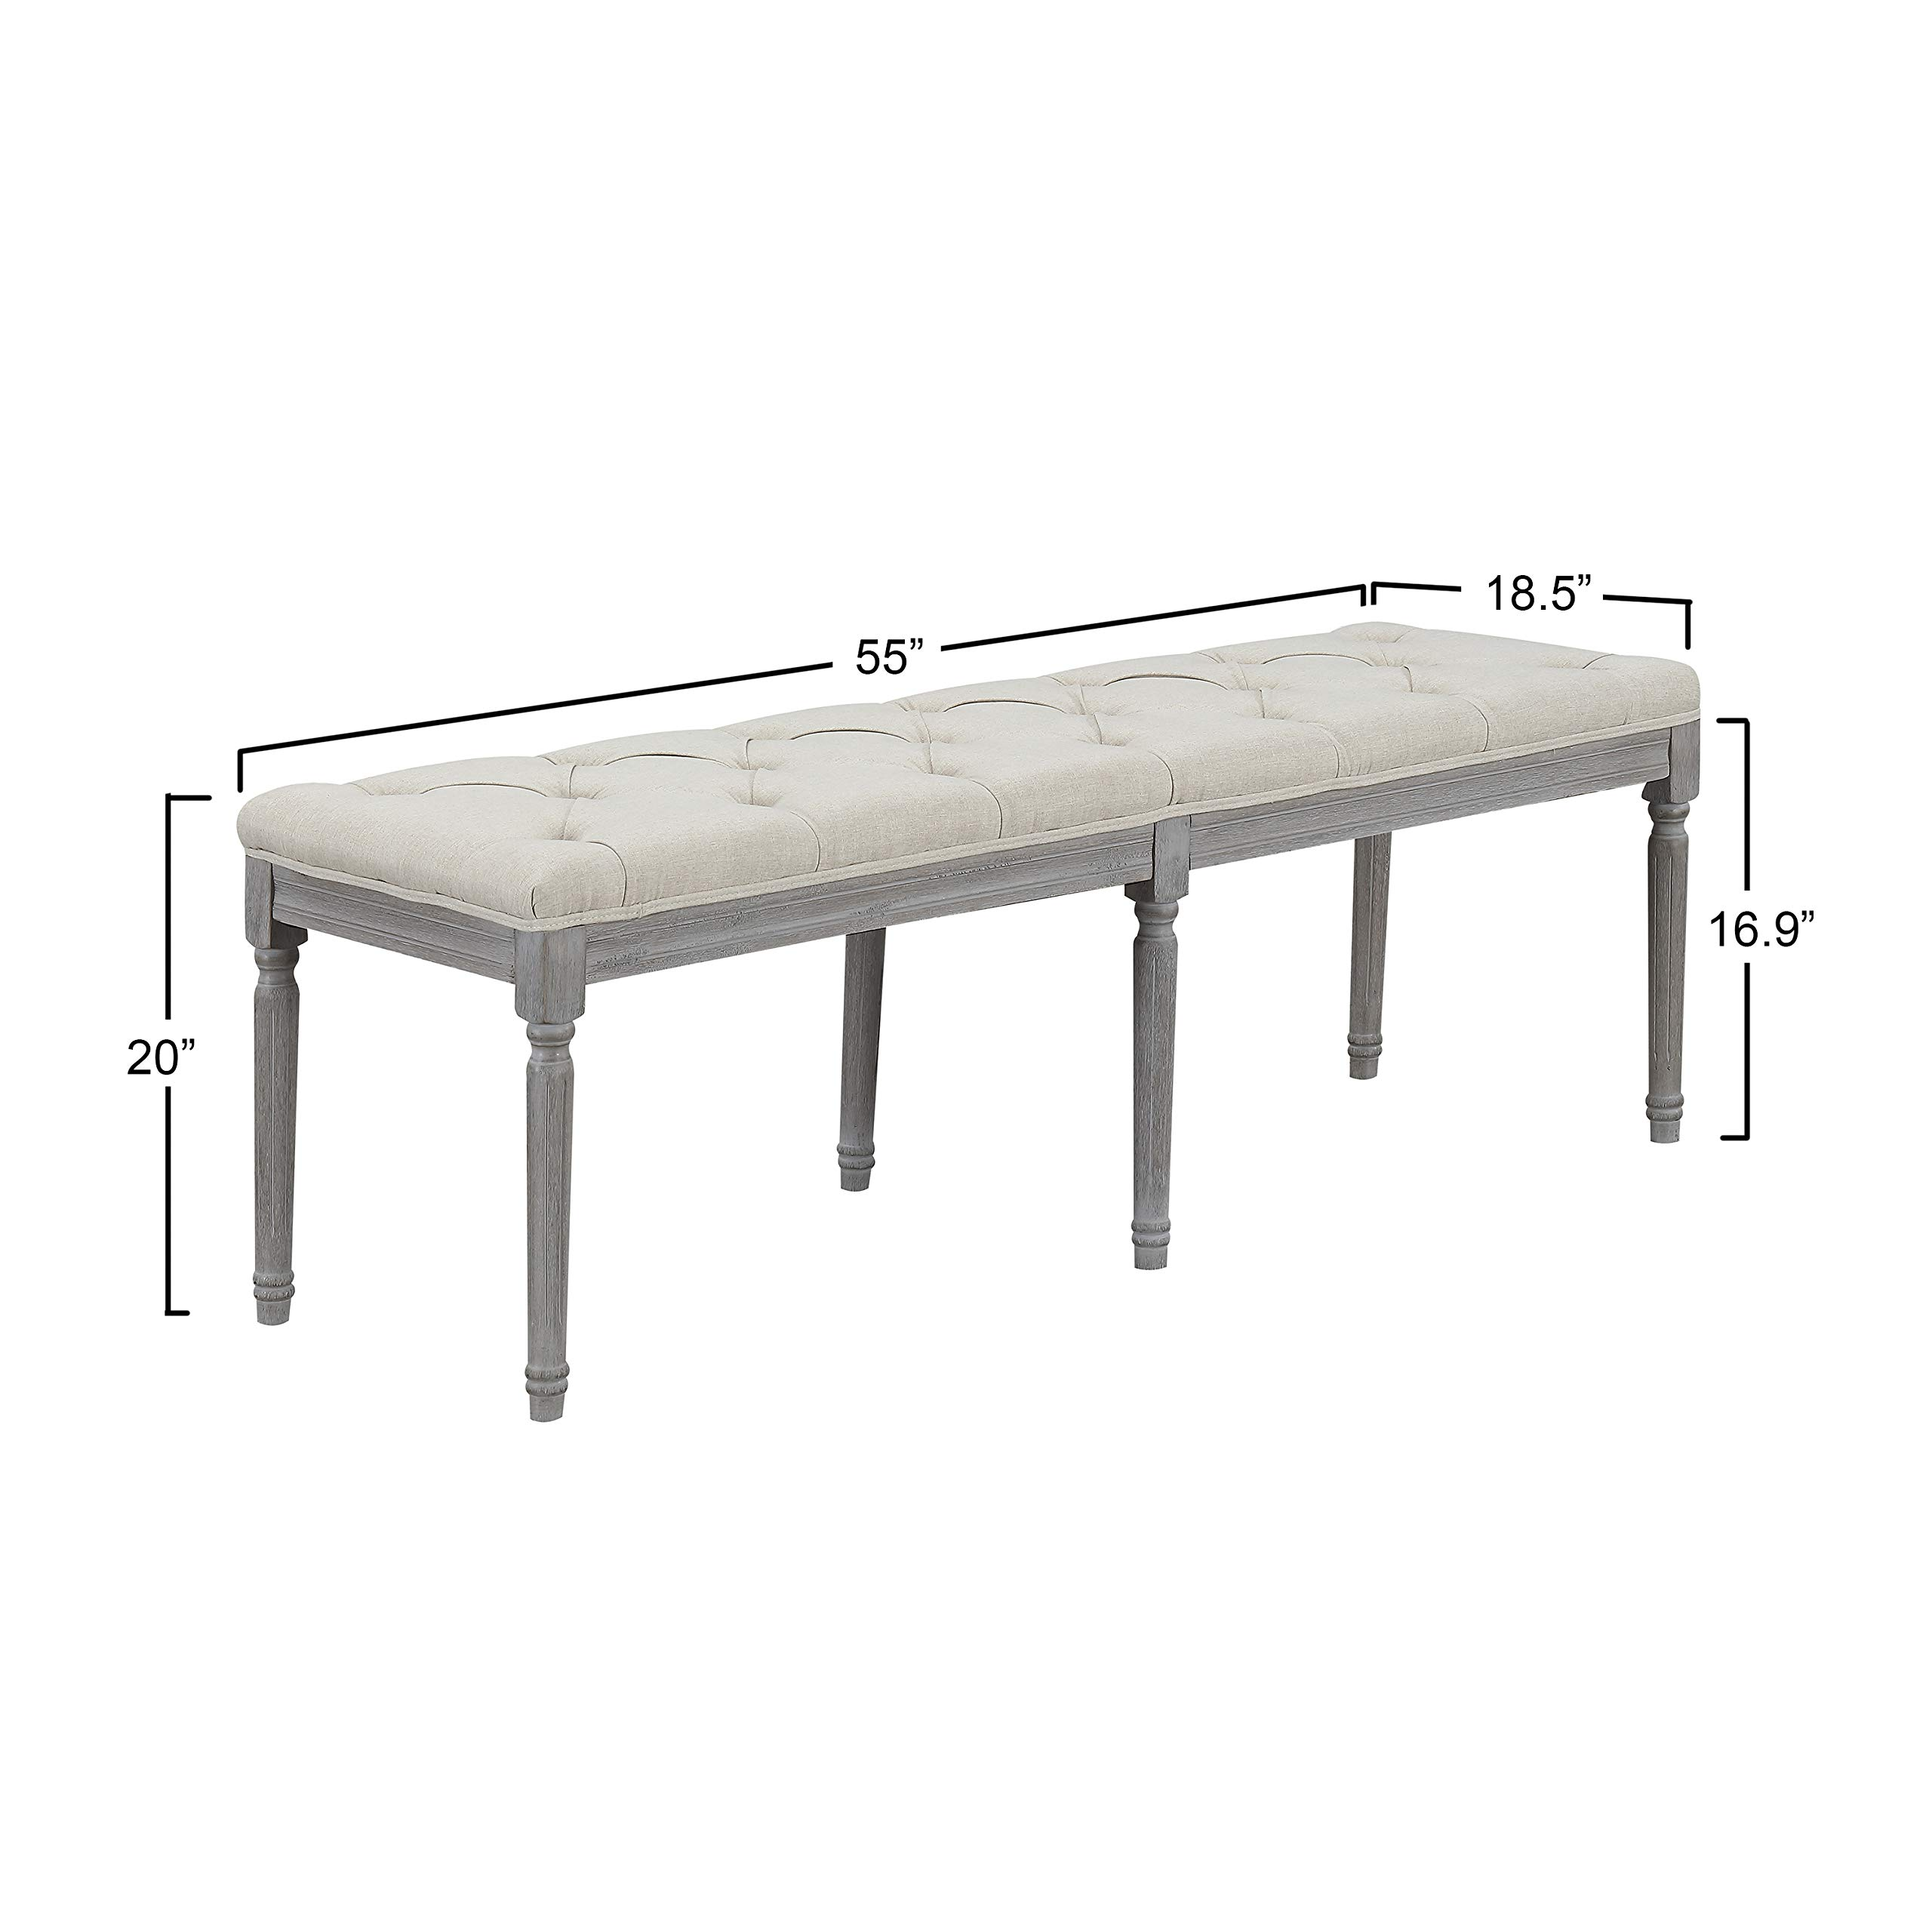 Jack Button Tufted Light Beige Upholstered Bench with Weathered Gray Legs by CHL CHRISTIES HOME LIVING (Image #2)